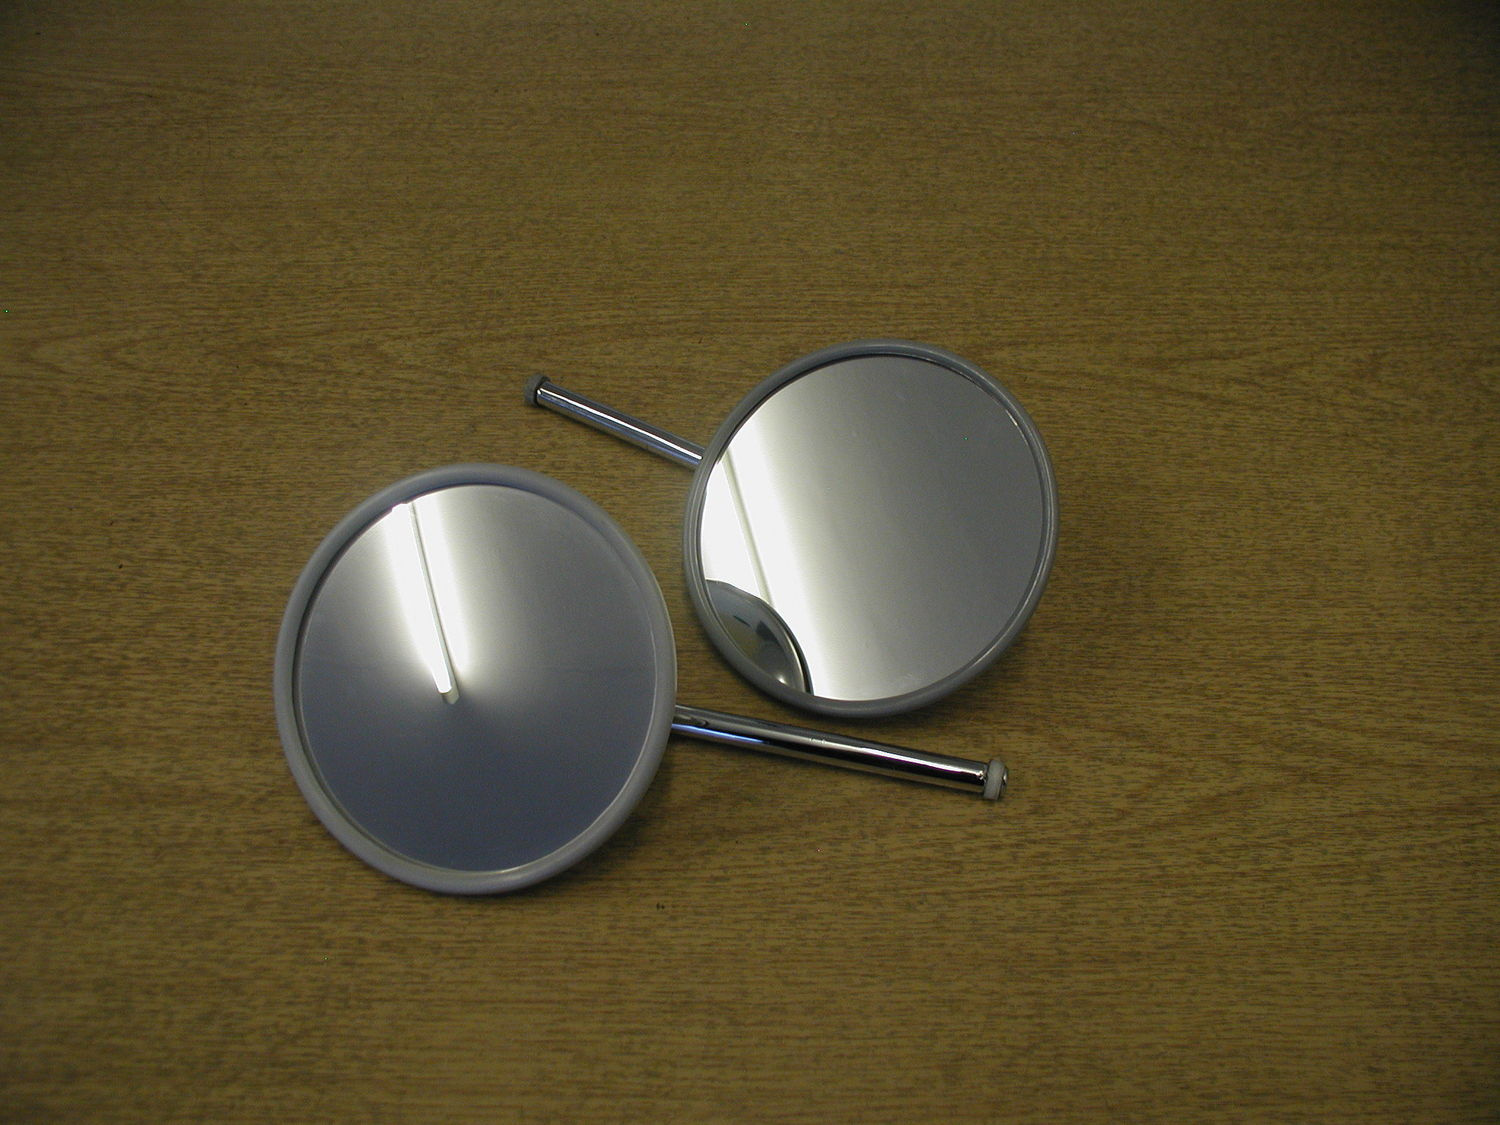 Door Mirror - Round Chrome LH (Convex)